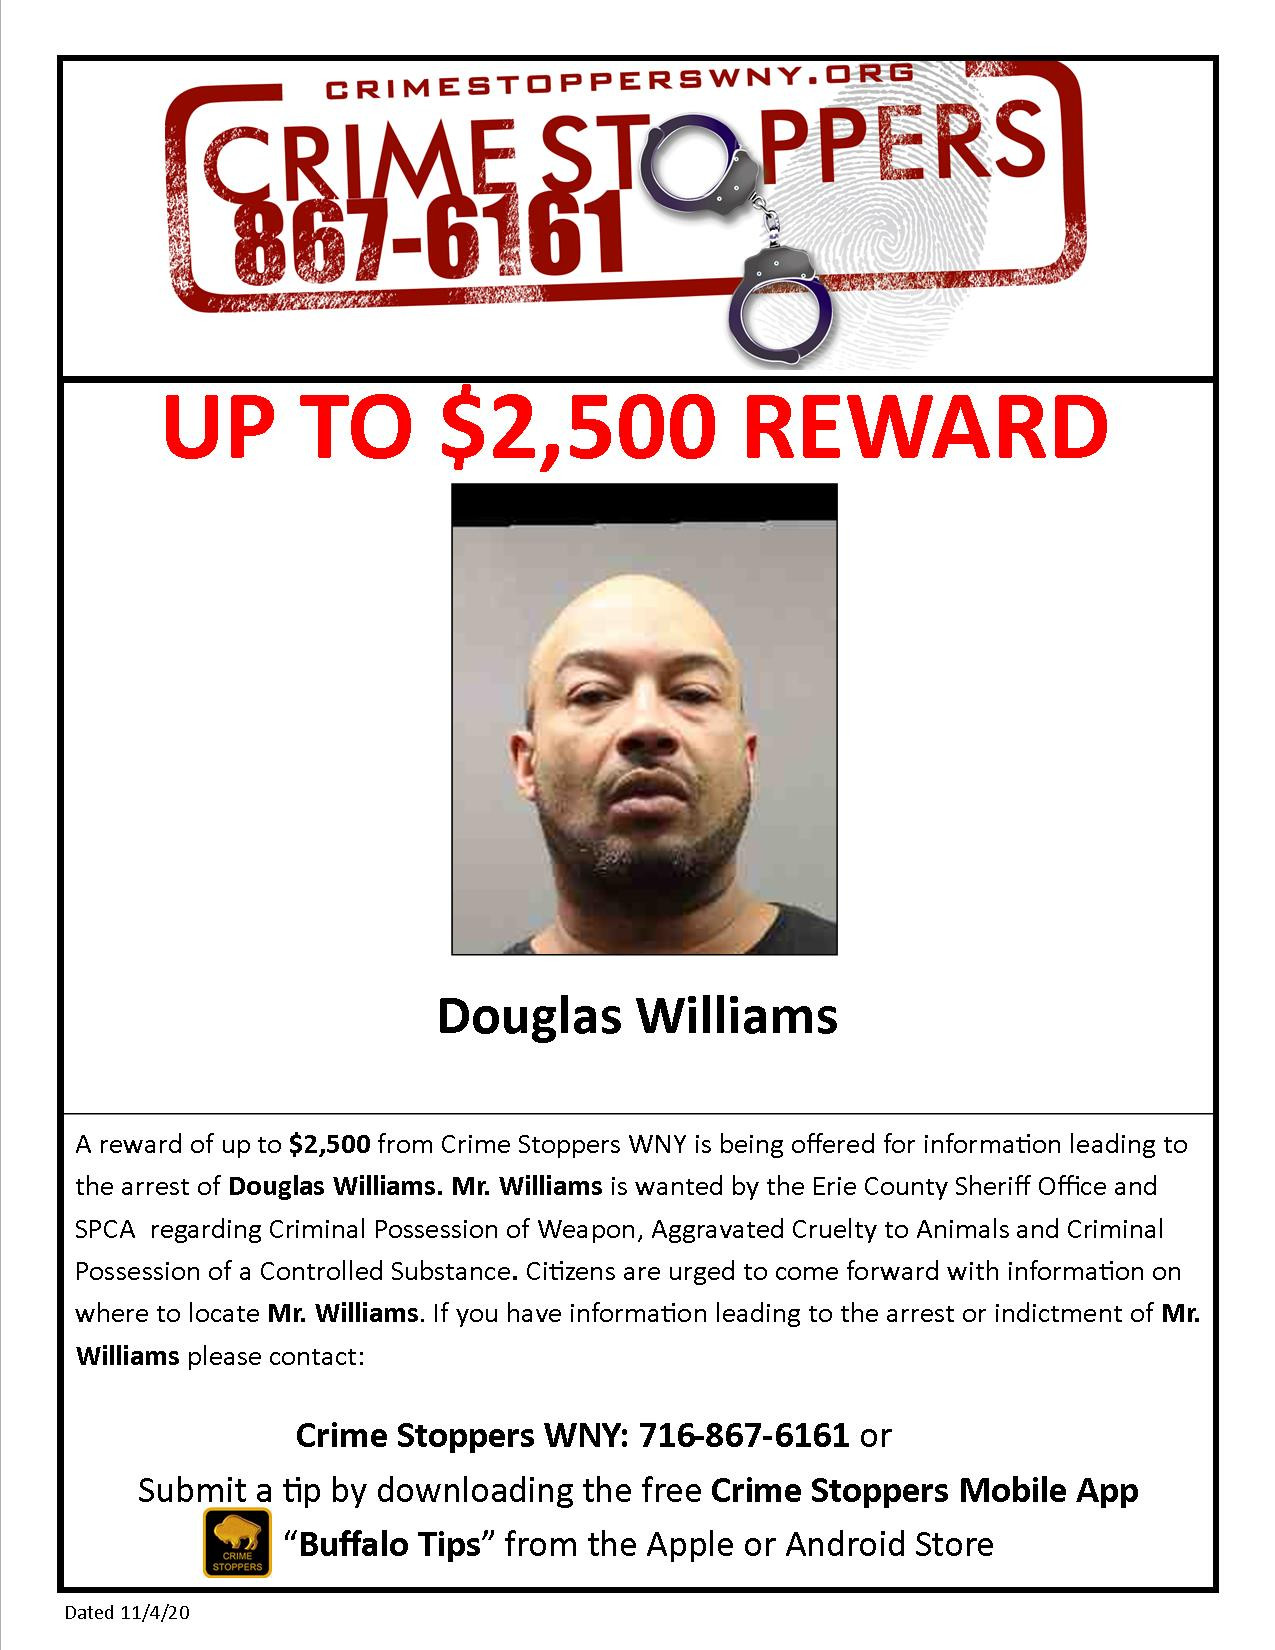 CrimeStoppers_DouglasWilliams